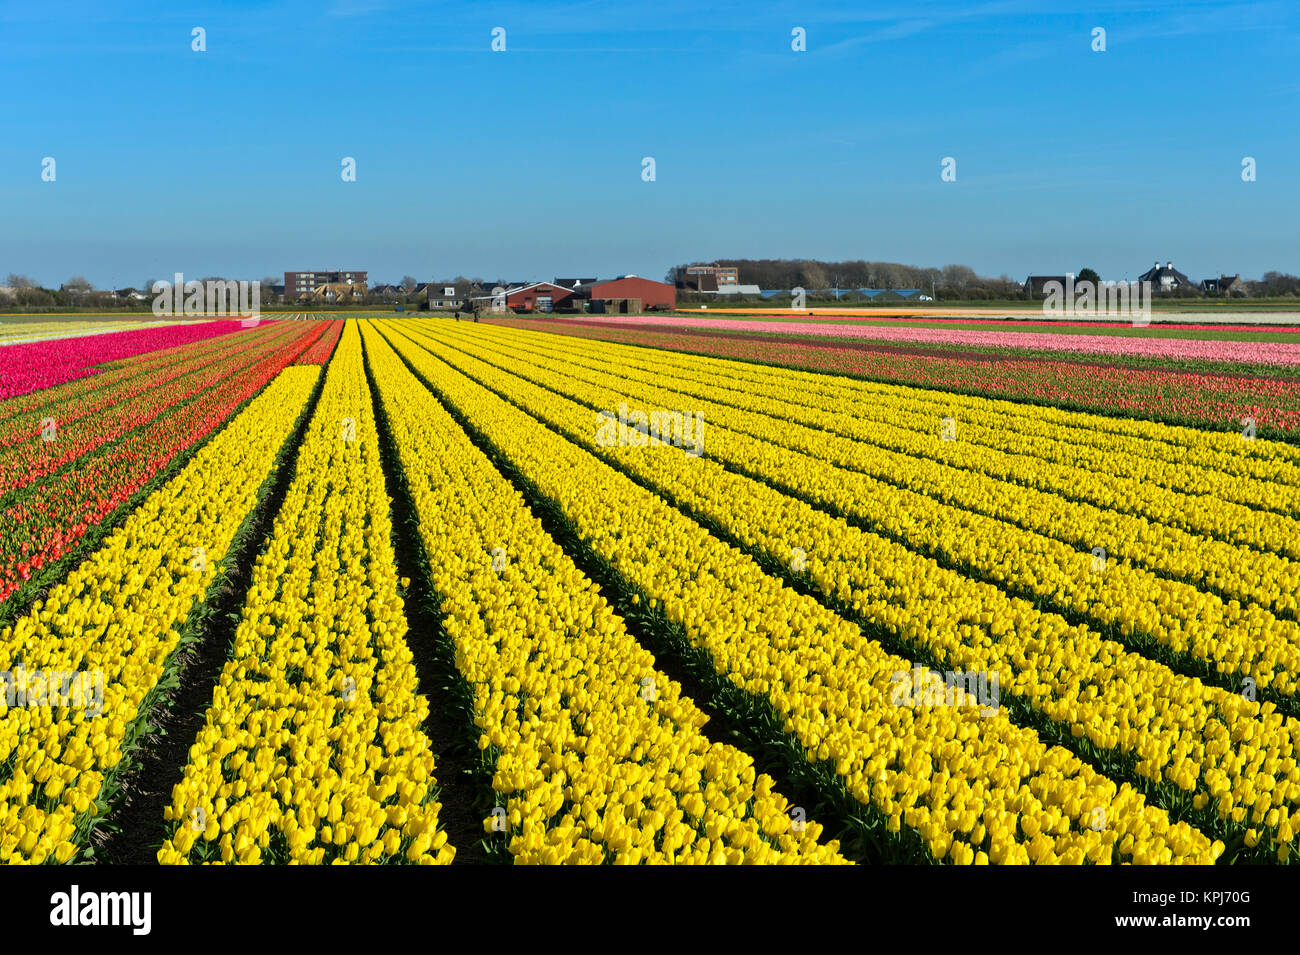 Field with yellow tulips, Yellow Purissima variety, production of flower bulbs, flower bulb region Bollenstreek, - Stock Image